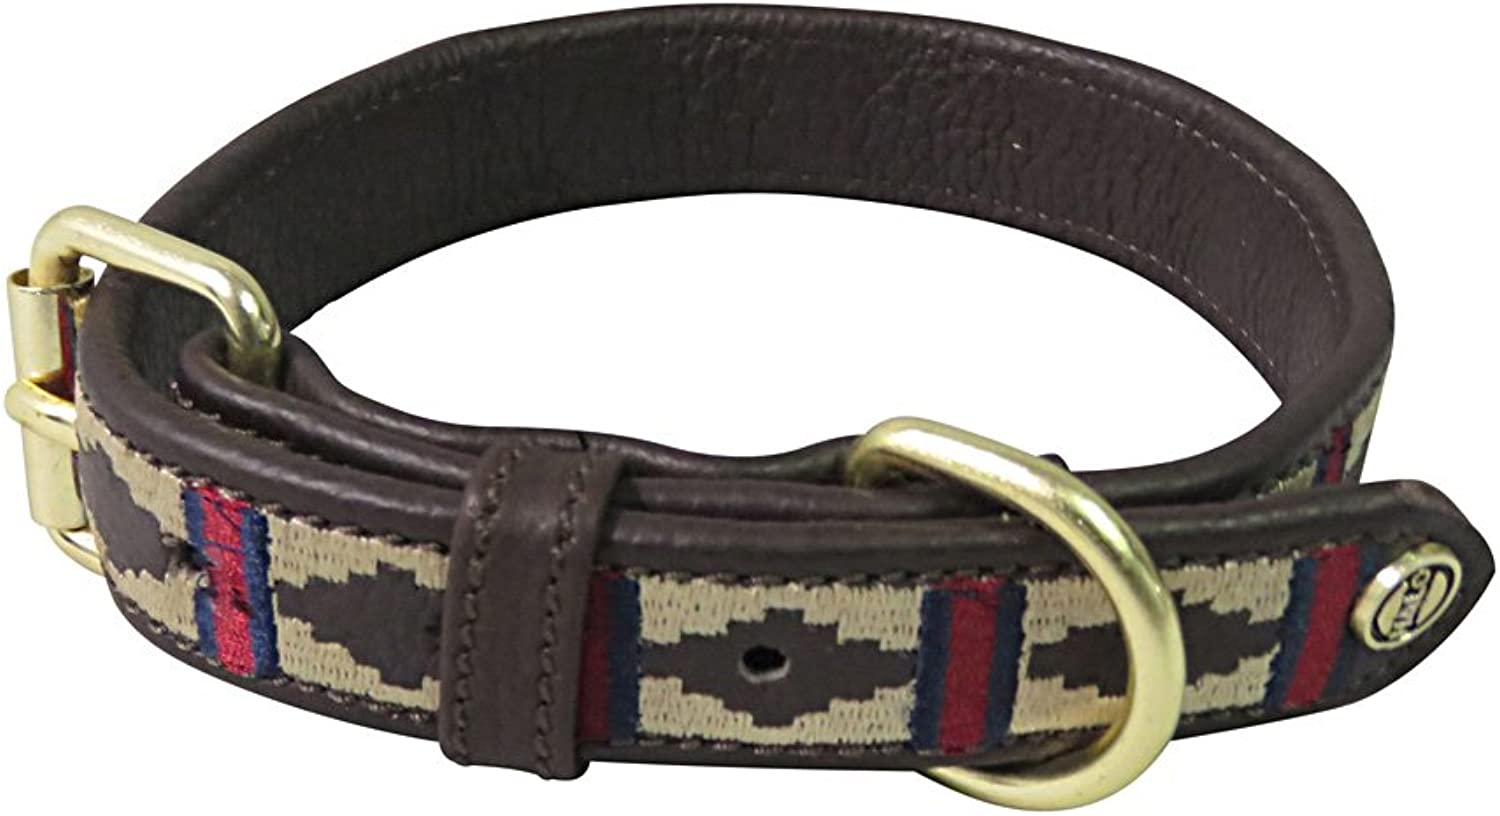 Halo Dog Collar Leather with Classic Dog Collar   color  Brown EC Red EC Navy, Size  XSmall